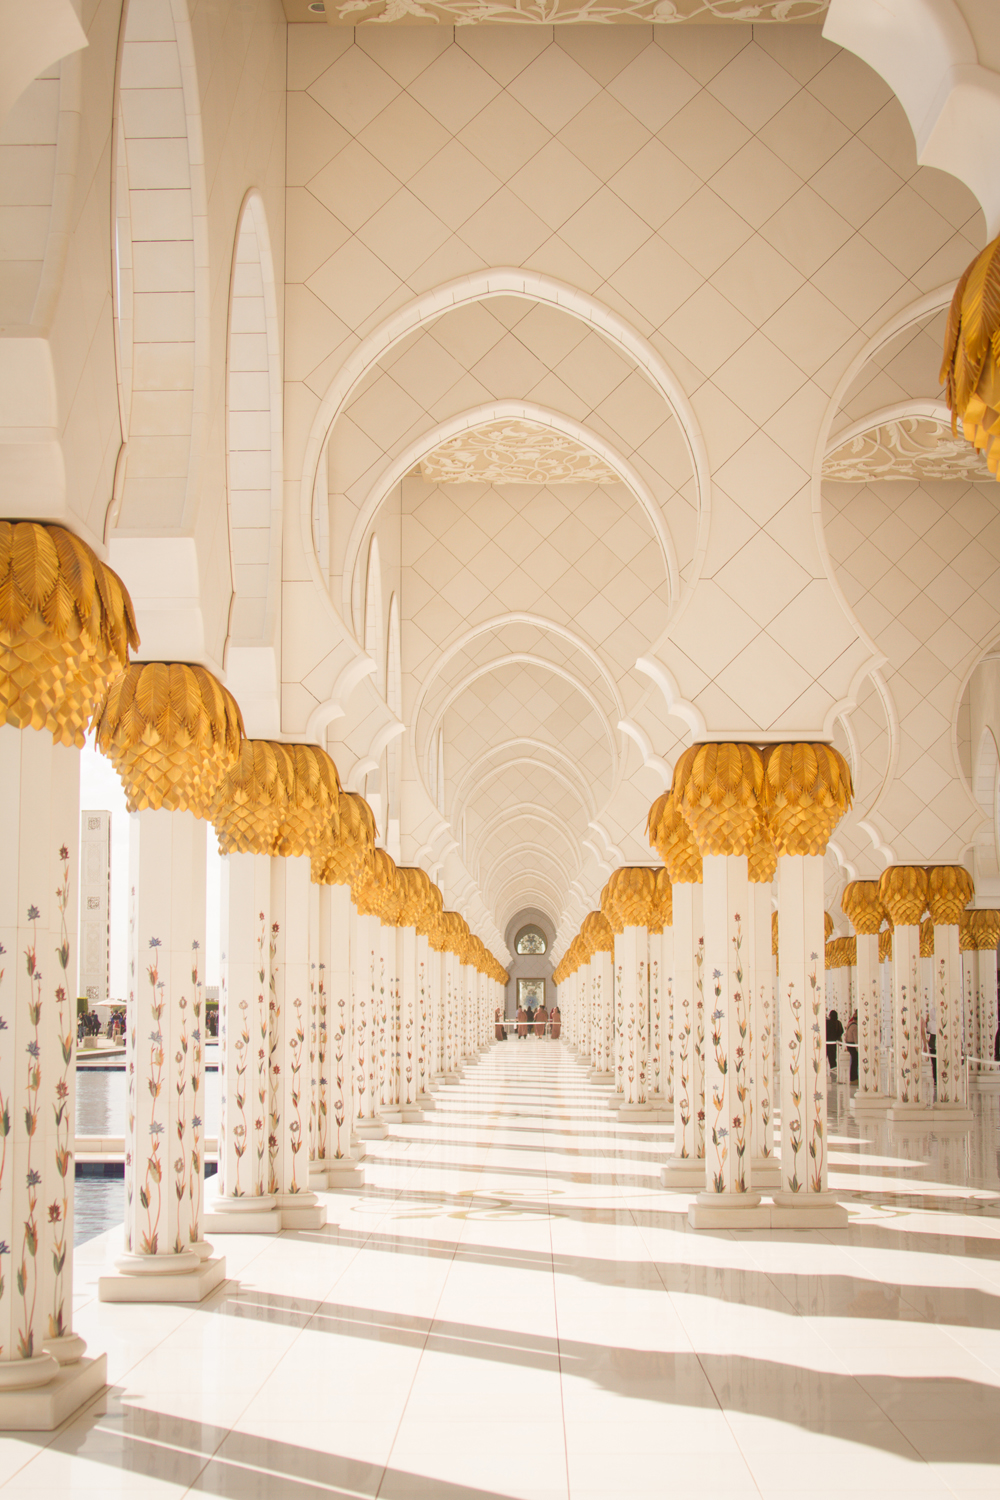 UAE Abu Dhabi Grand Mosque 1 billion plus (5)-2.jpg